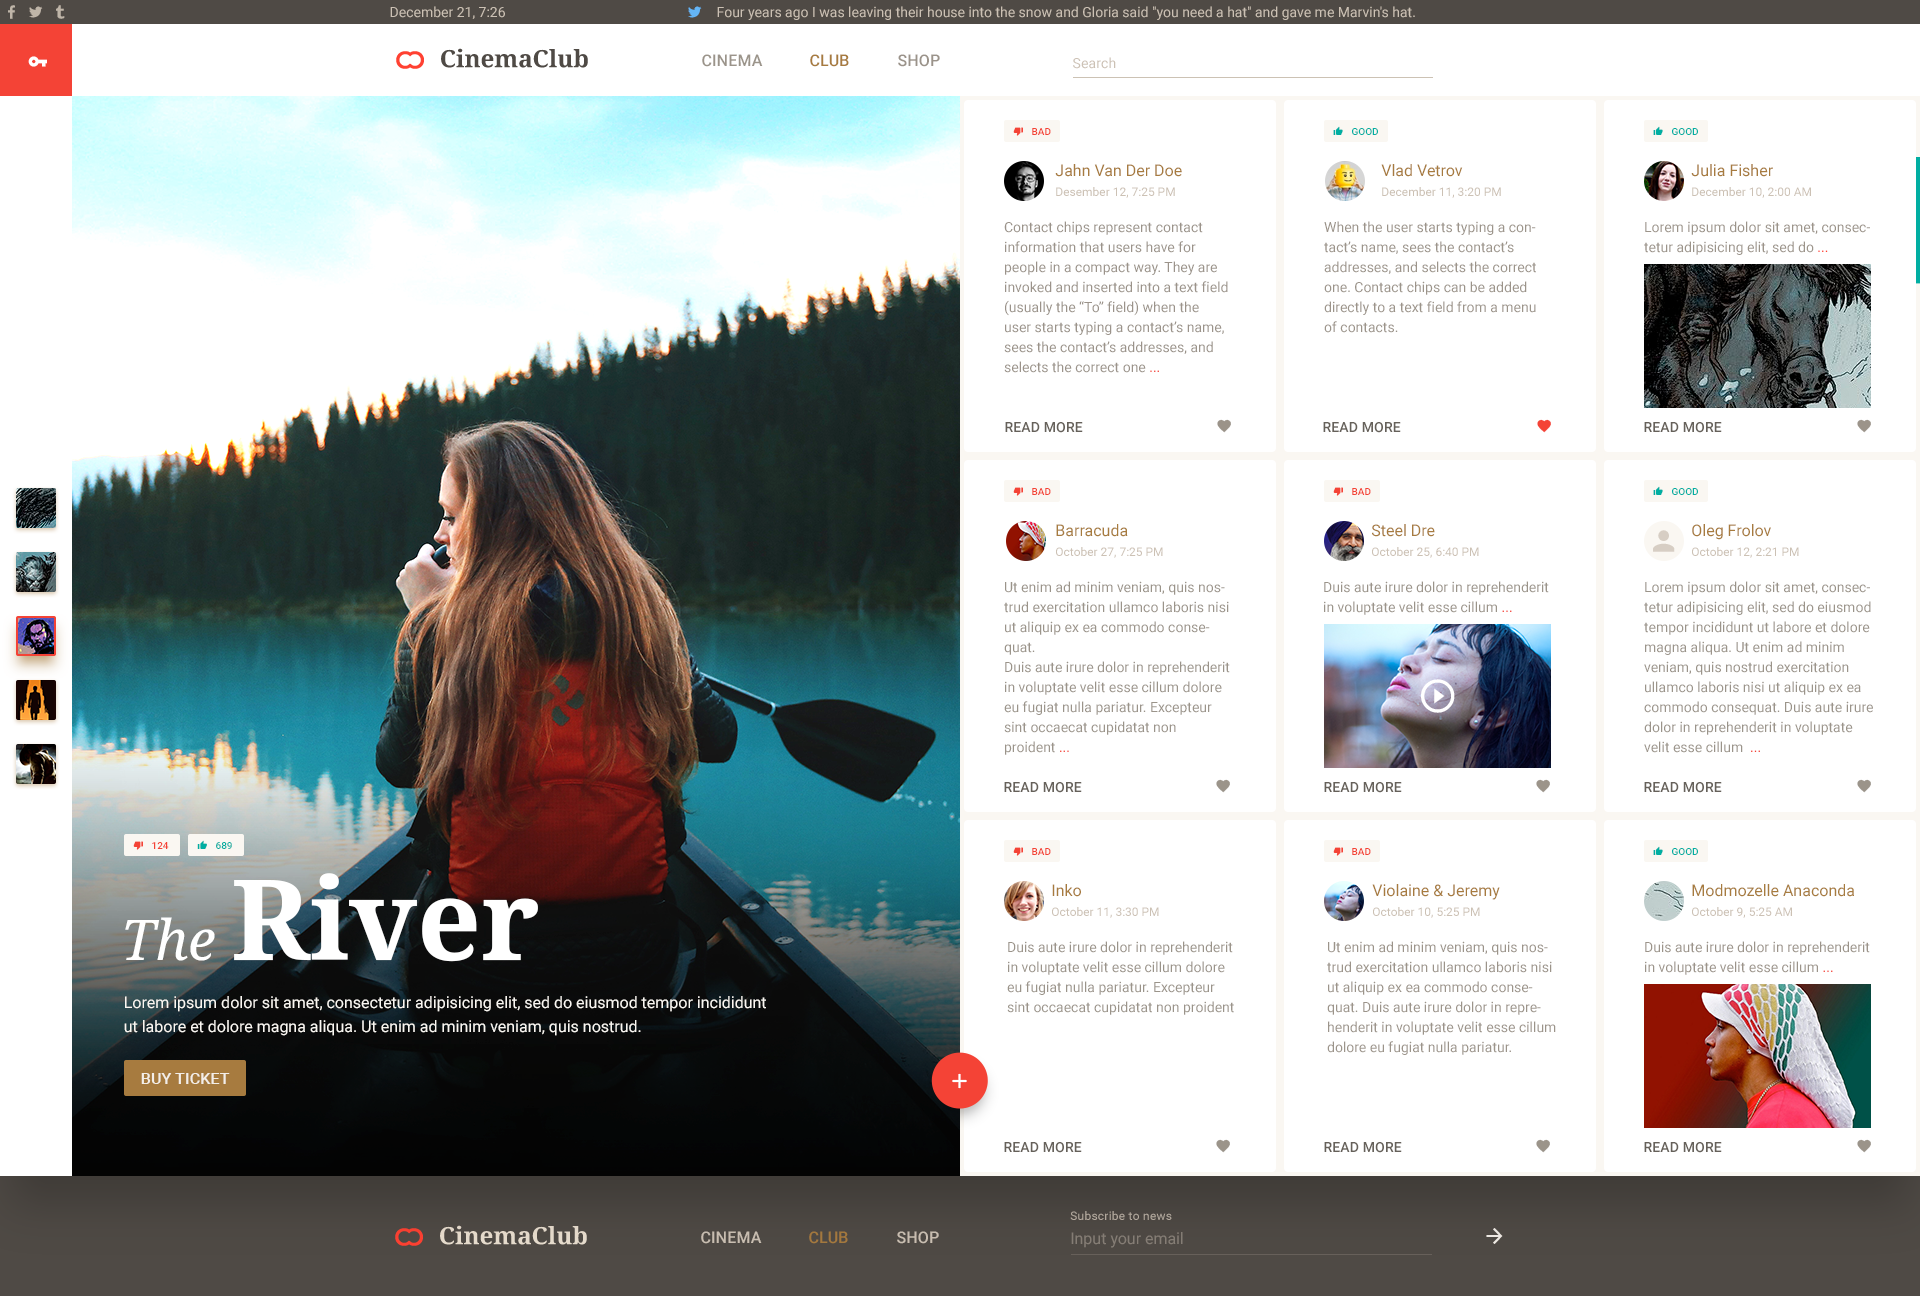 Cinemaclub Material Design Based Psd Template For Cinema By Yask